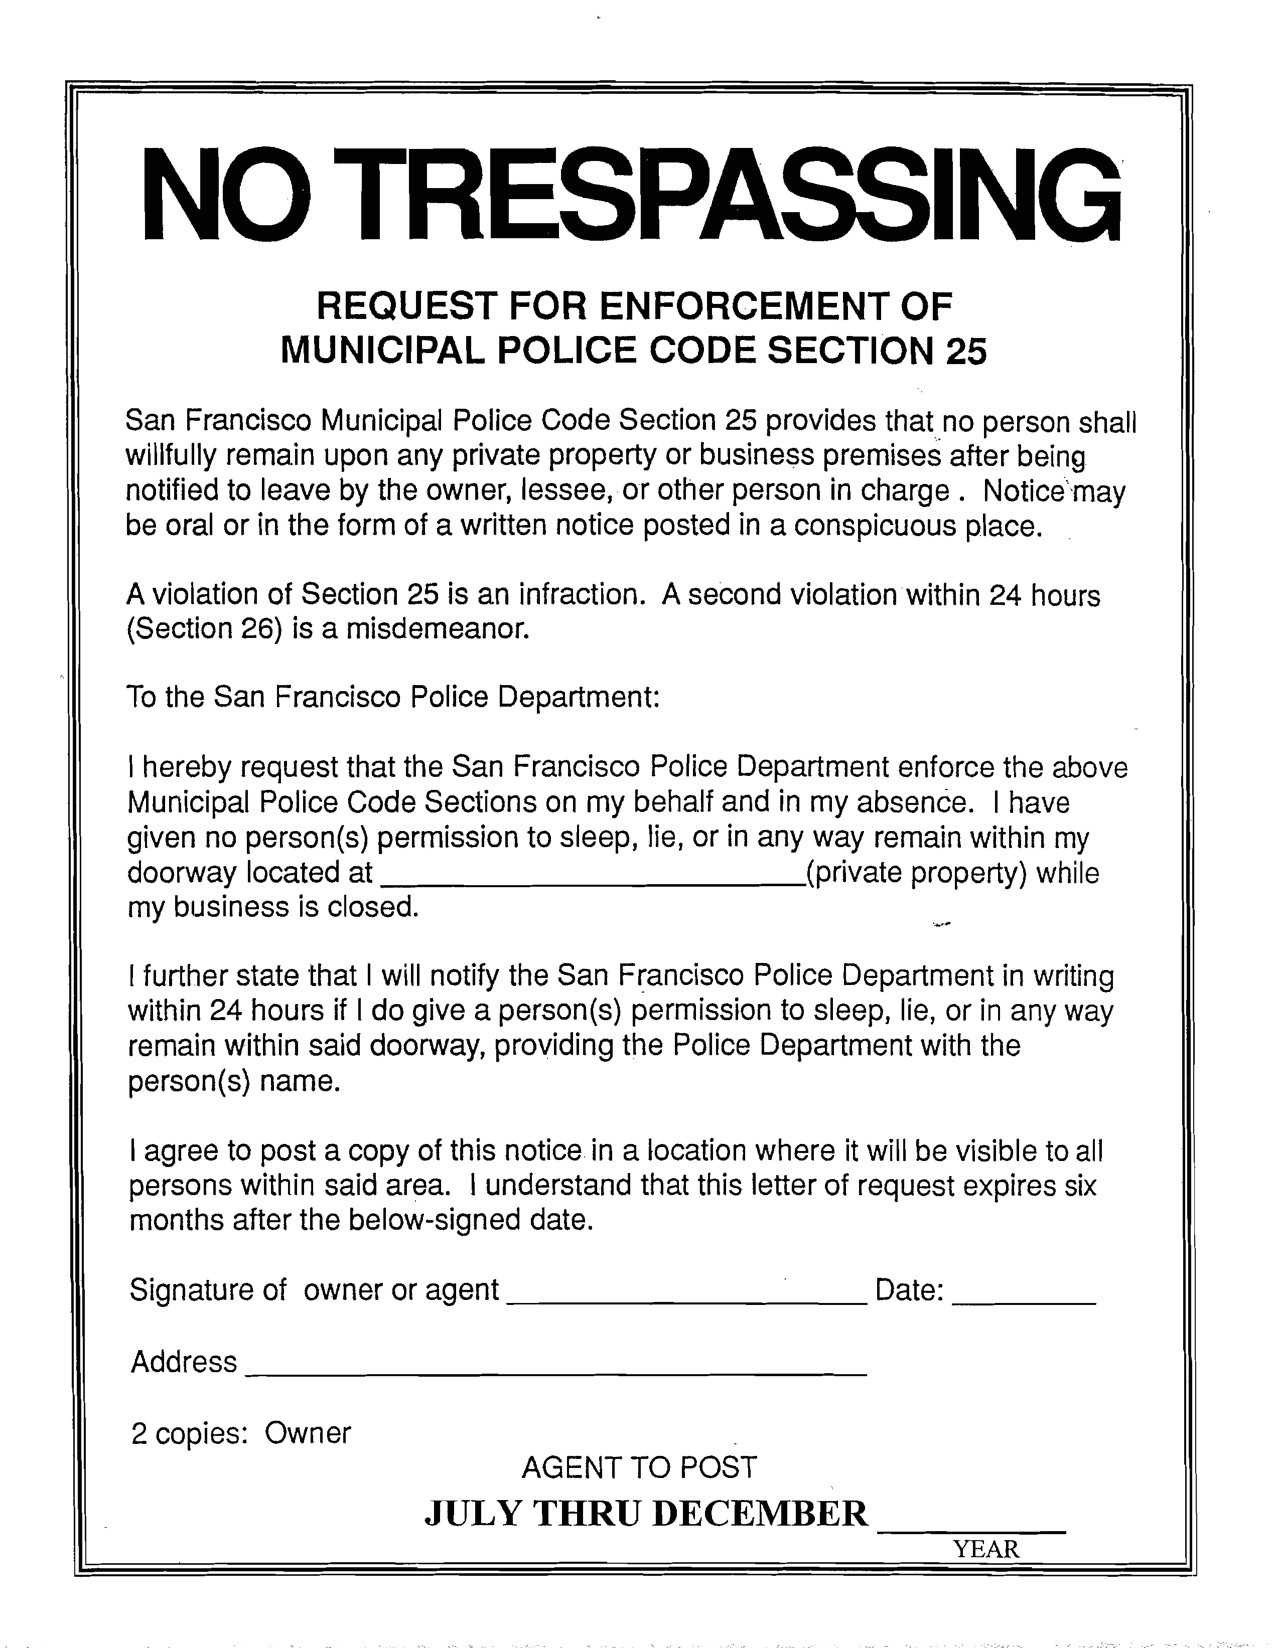 Trespass Notice Template Best Photos Of No Trespassing Notice Letter No Trespass